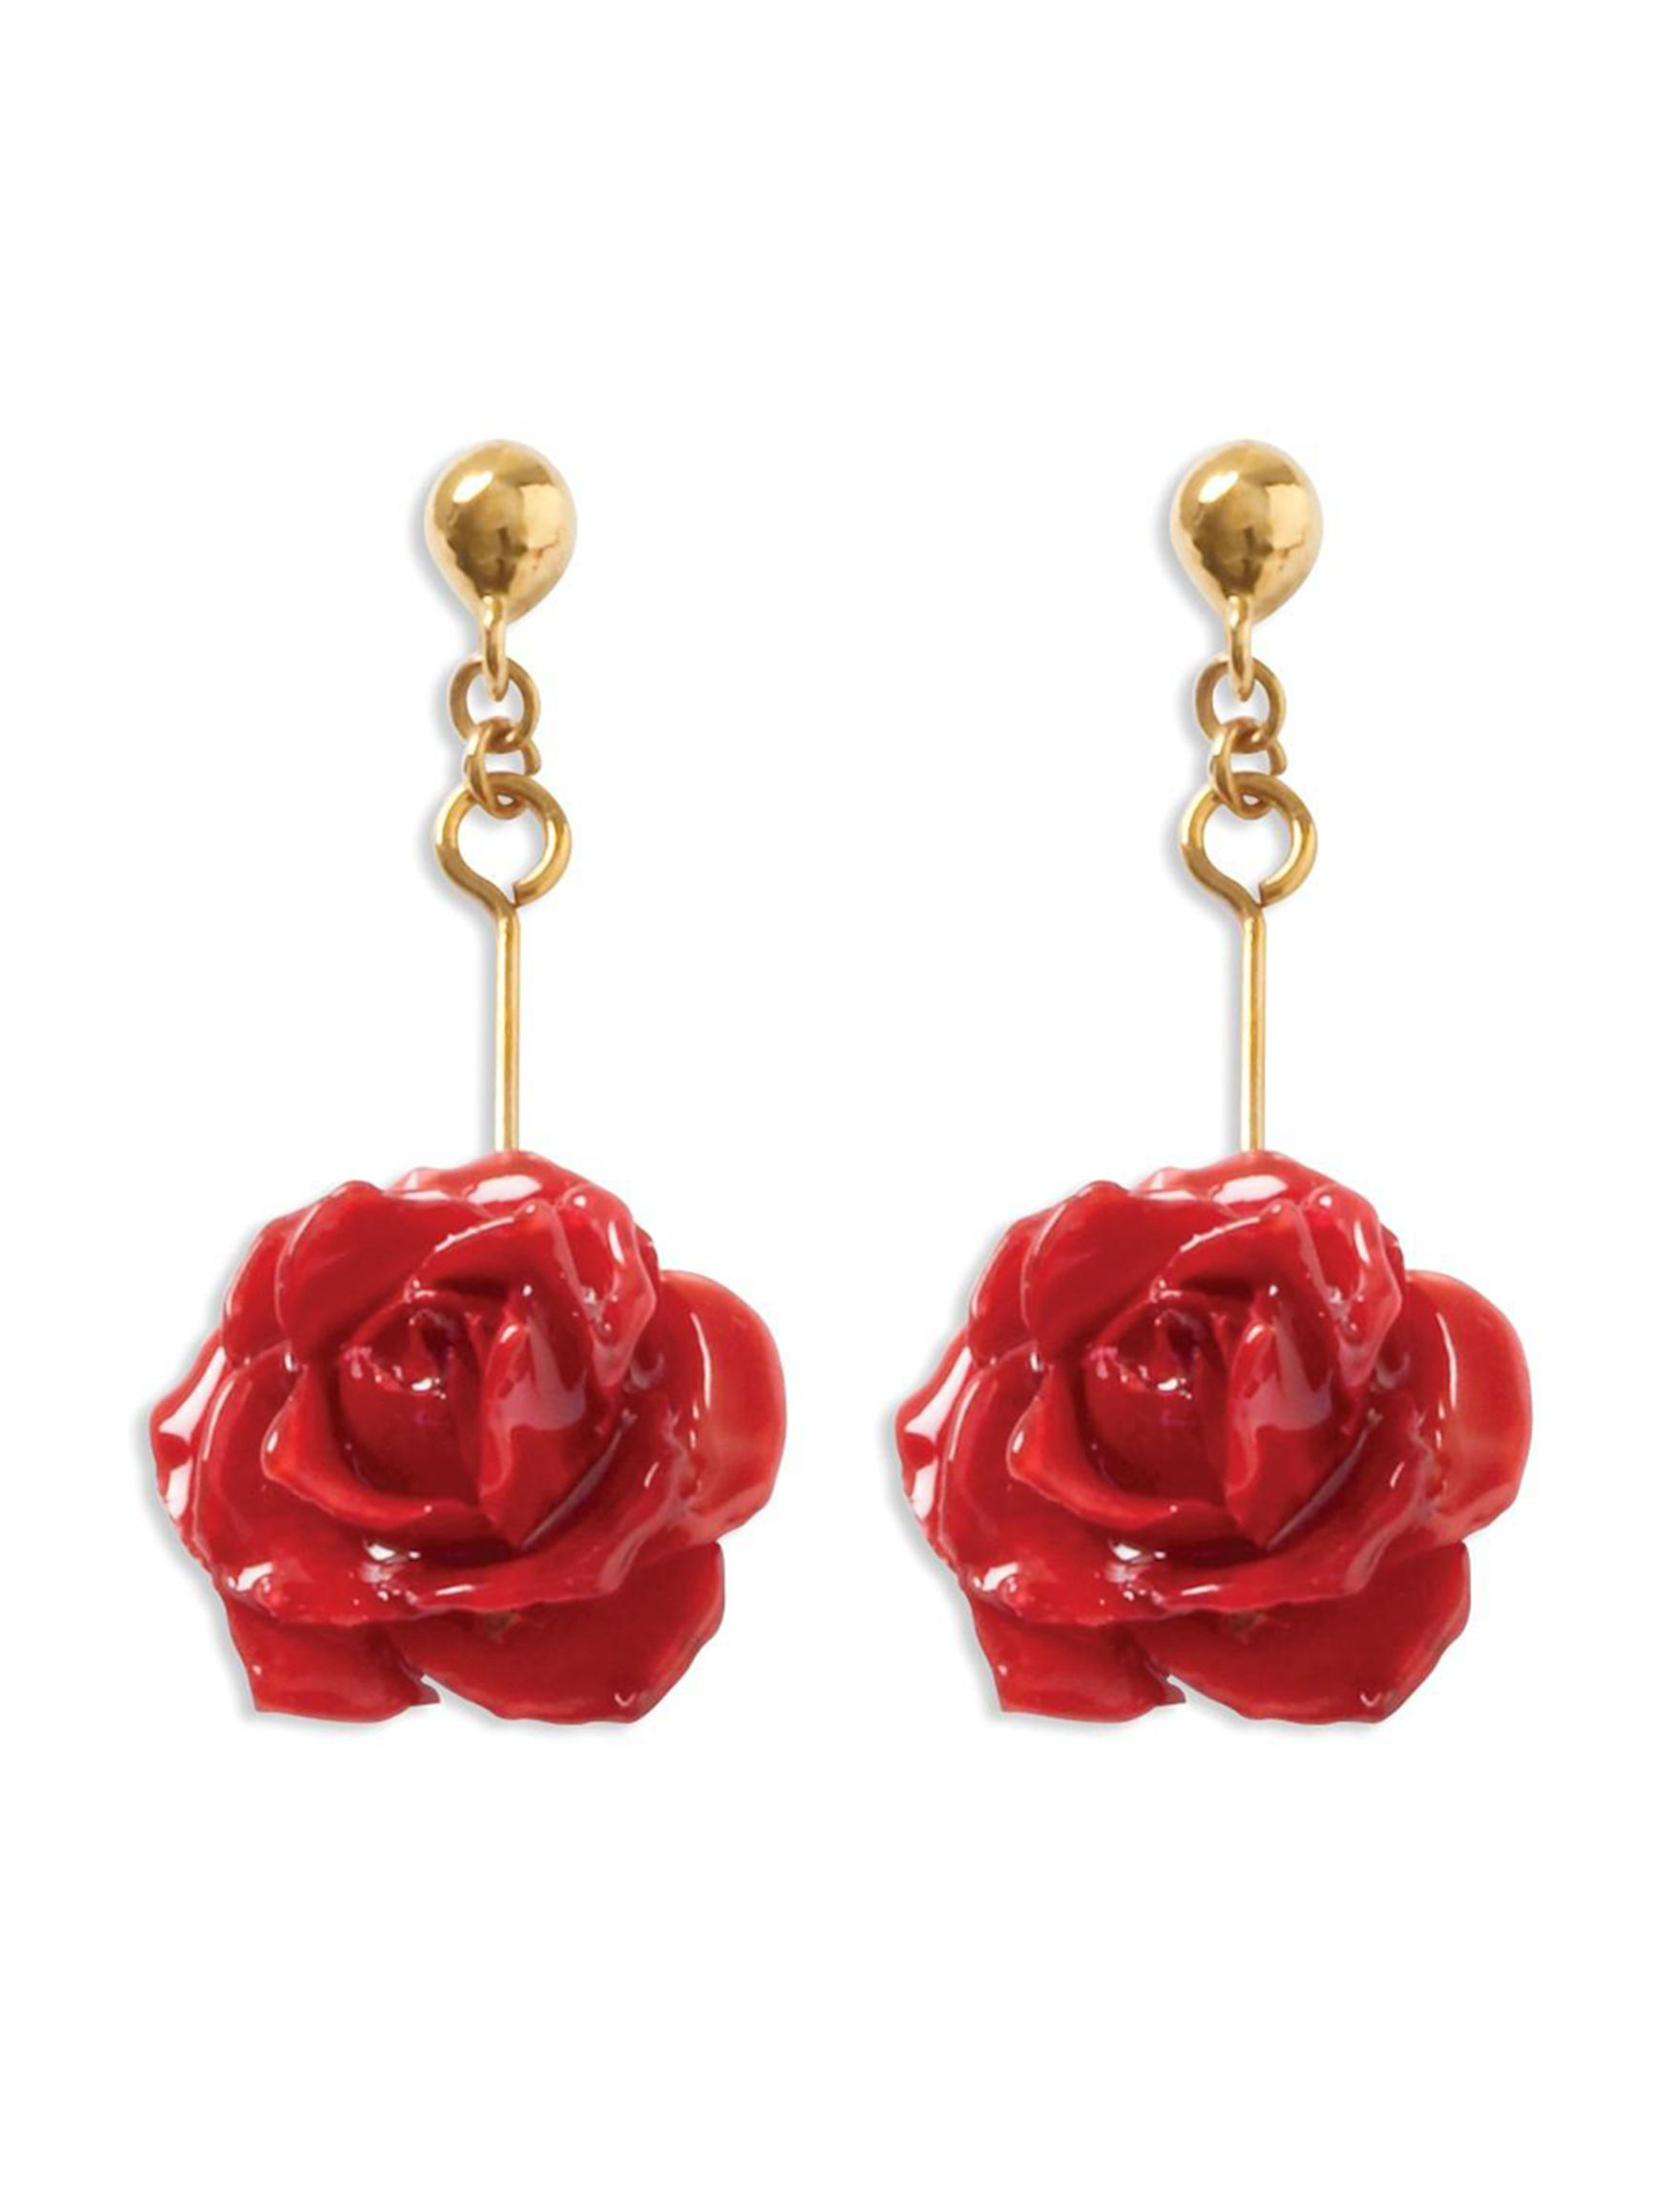 Affordable Expressions Red / Gold Drops Earrings Fine Jewelry